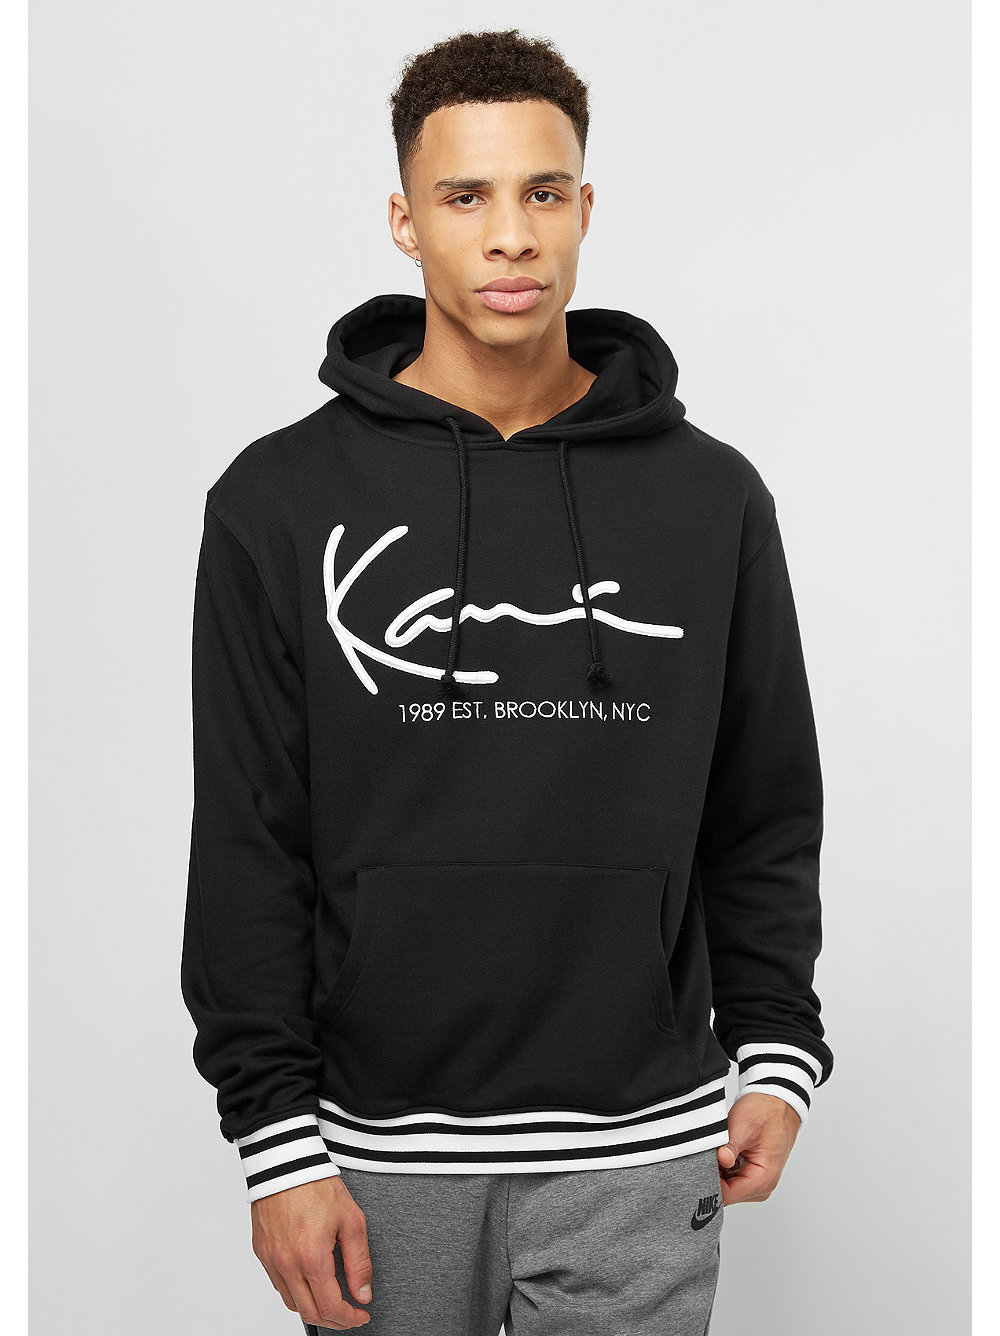 karl kani hooded sweatshirt basic black snipes onlineshop. Black Bedroom Furniture Sets. Home Design Ideas